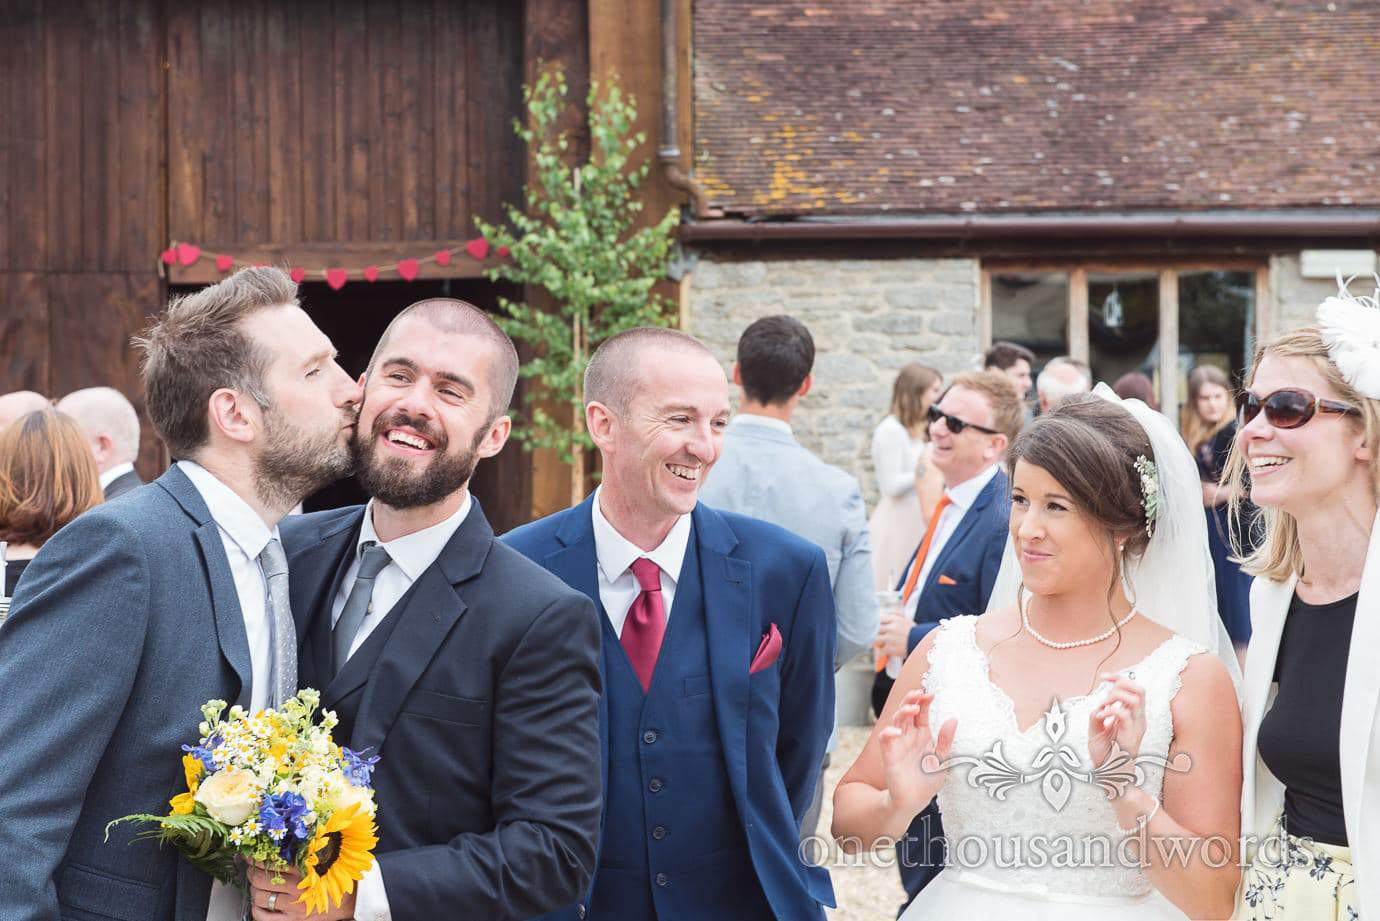 Wedding guests kissing each others beards at Stockbridge farm barn wedding